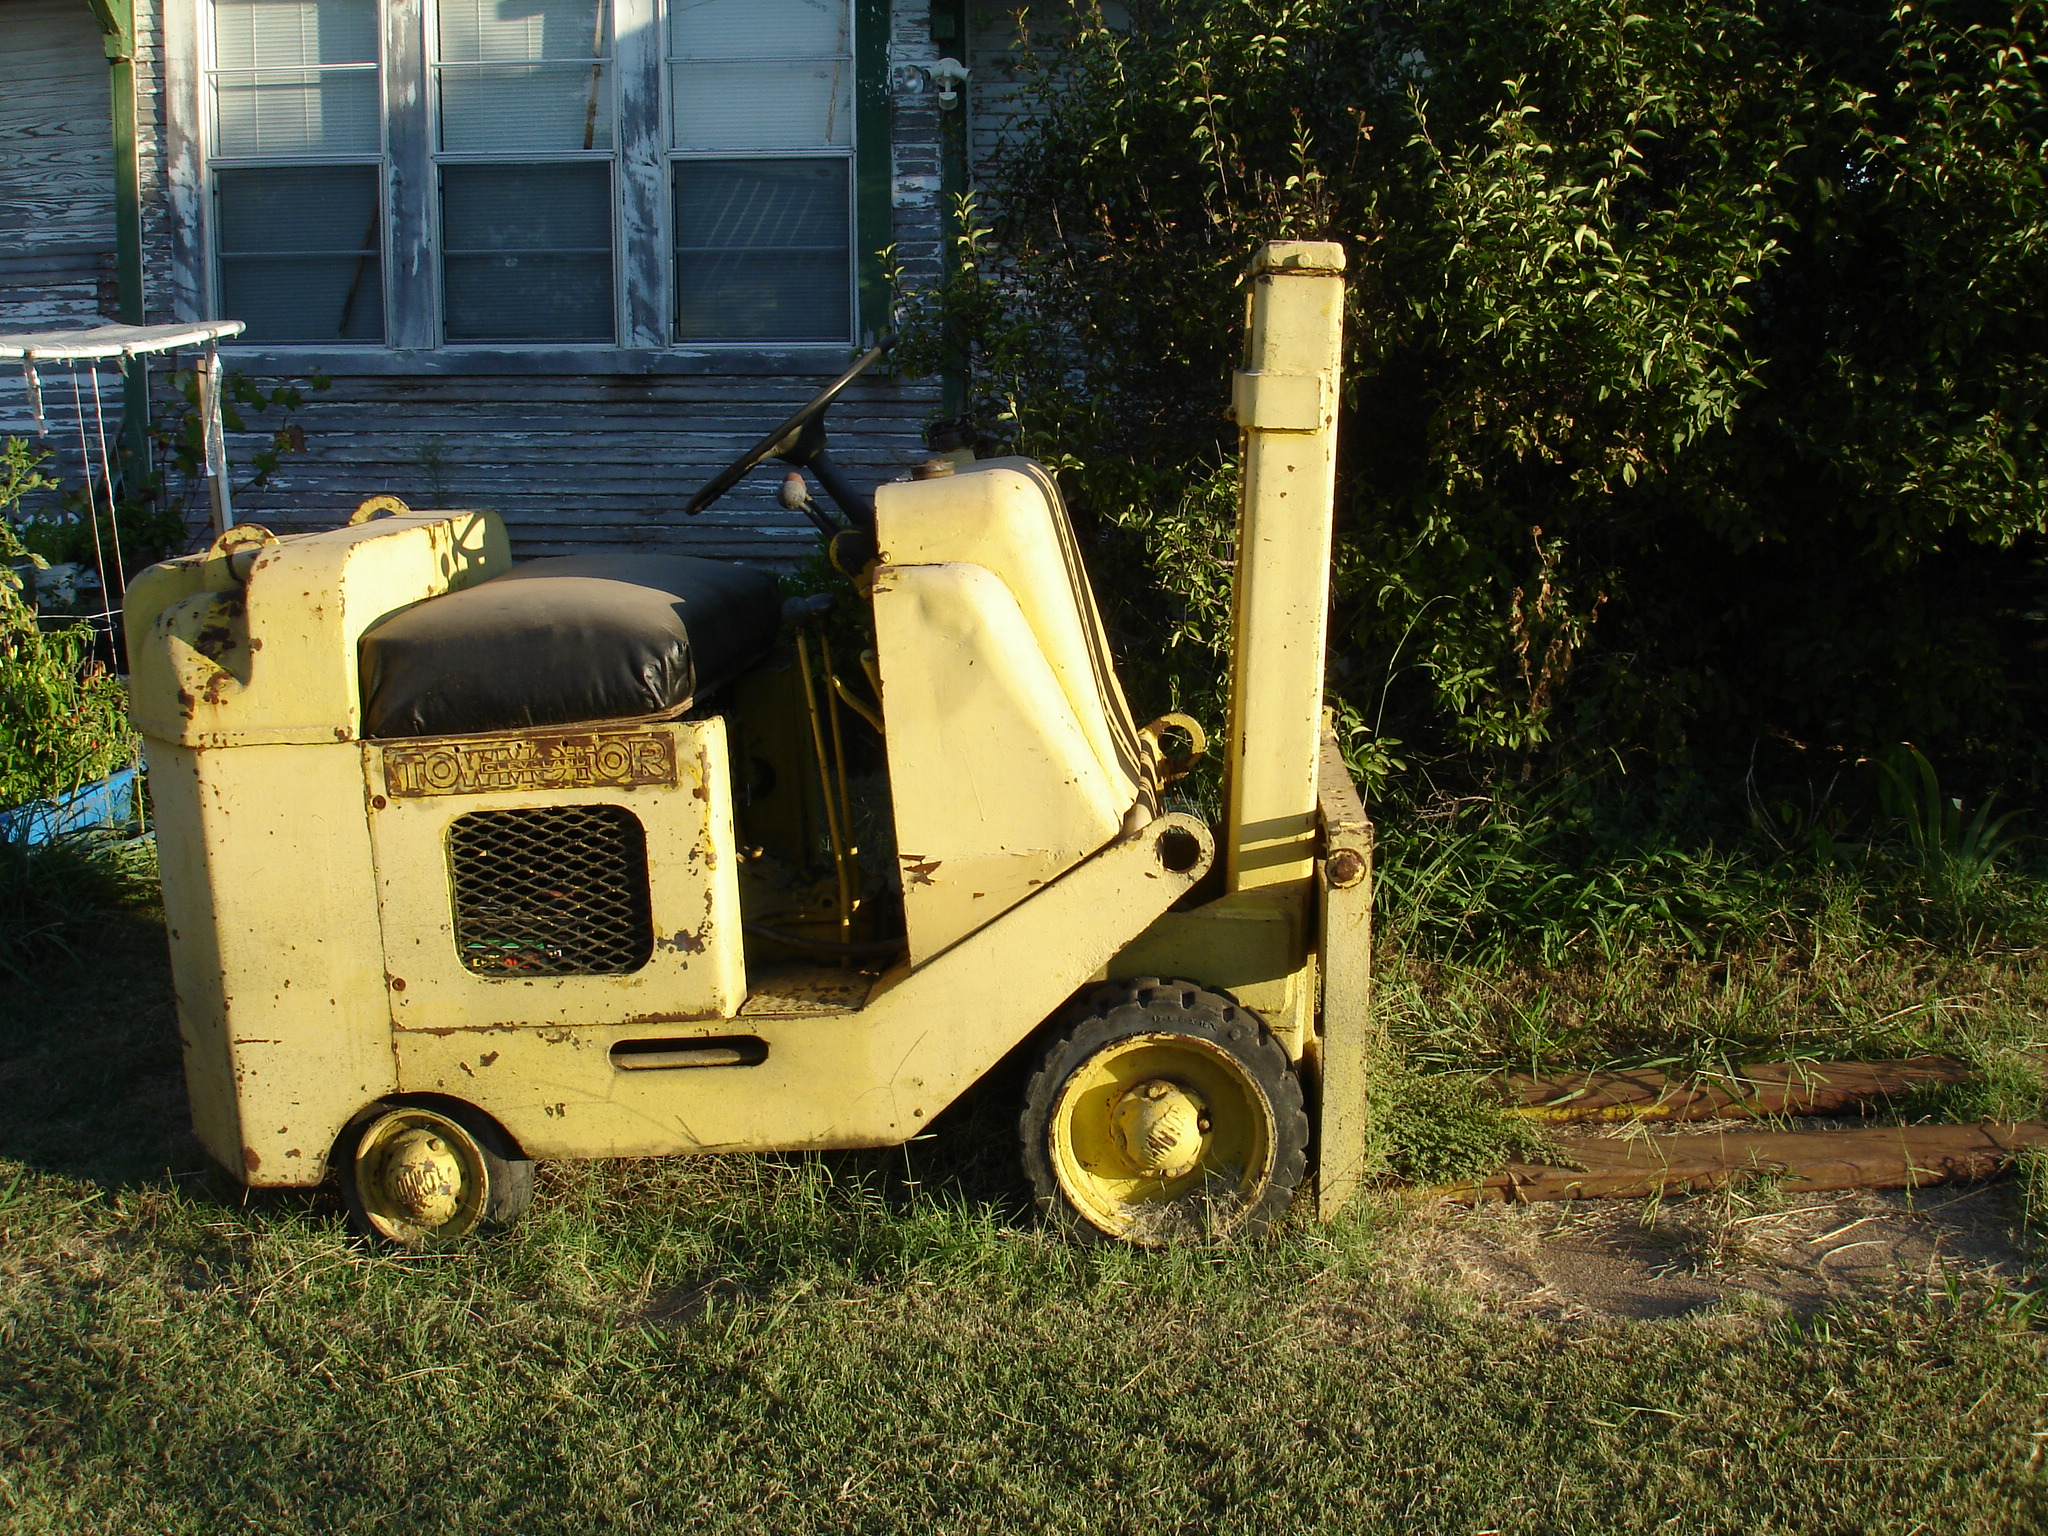 Towmotor Forklifts Tow Motor Tlc Engine Diagram Greetings From Texas Geert